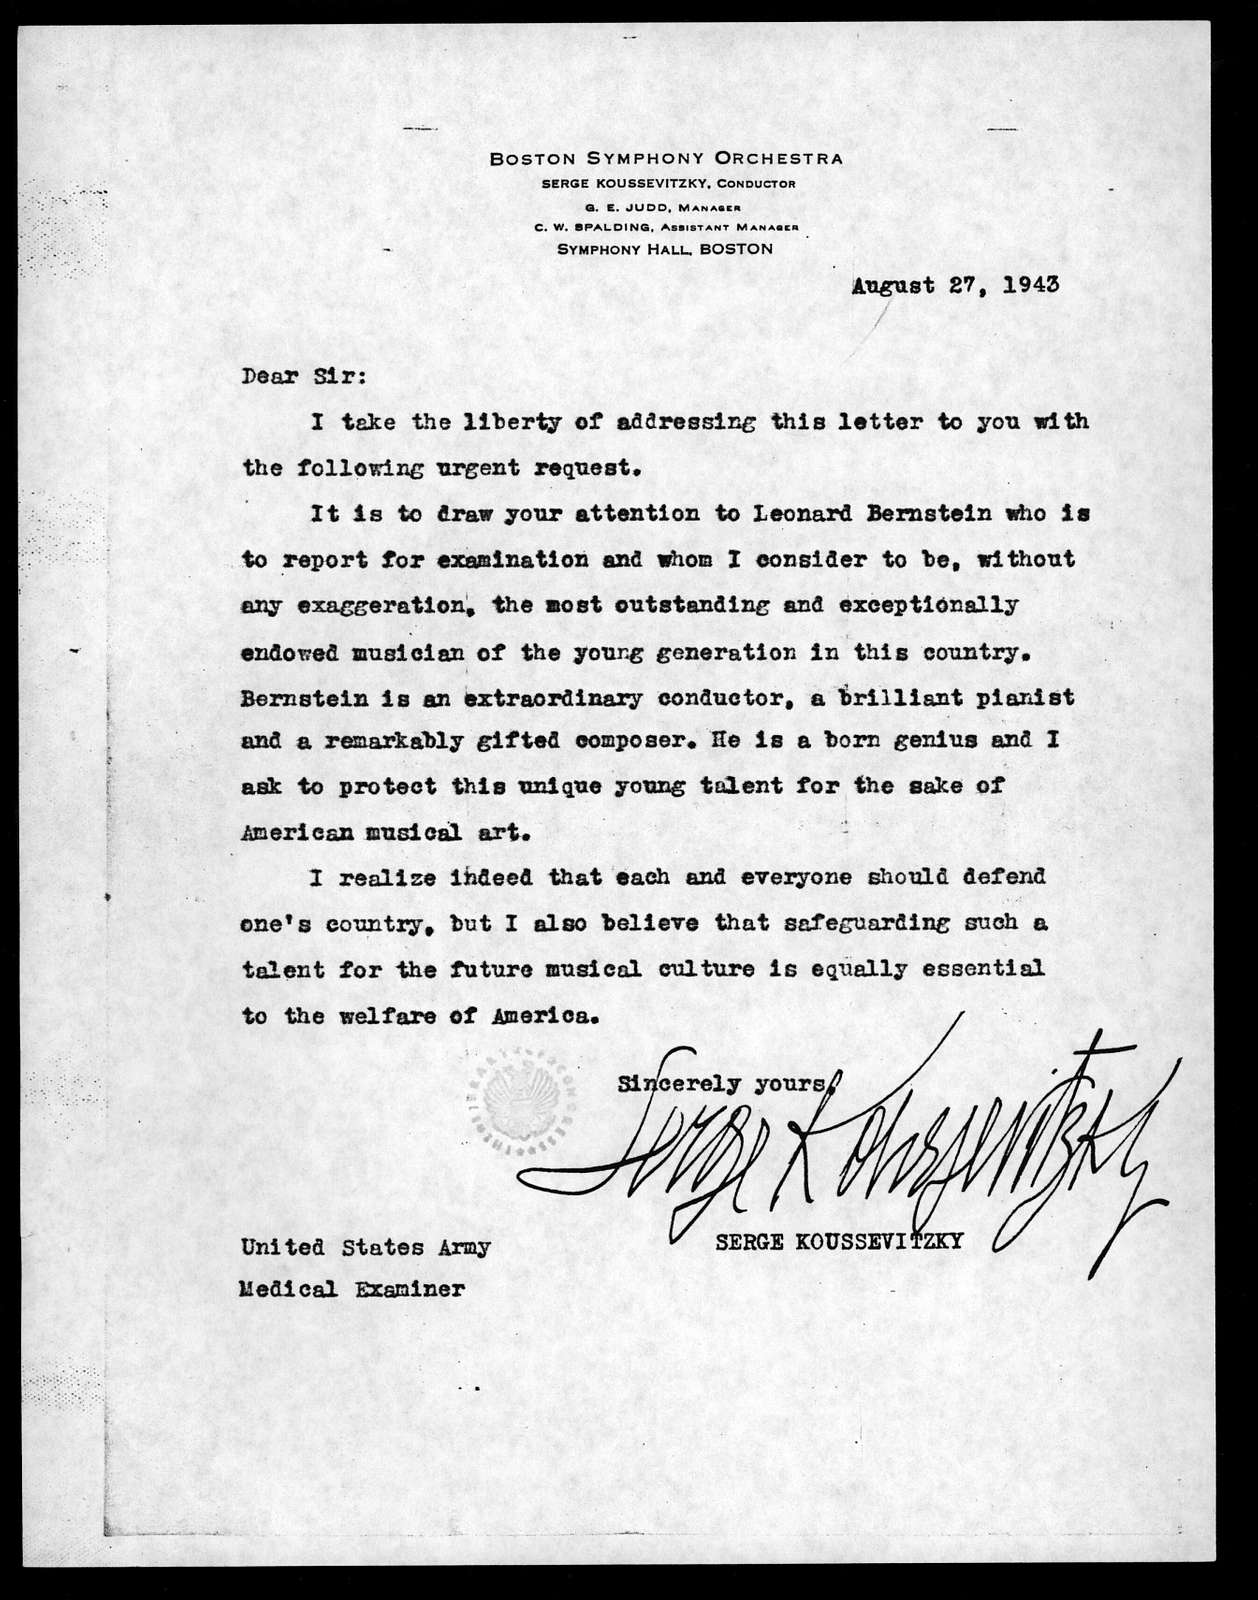 Letter from Serge Koussevitzky to Aubrey Williams, August 18, 1941